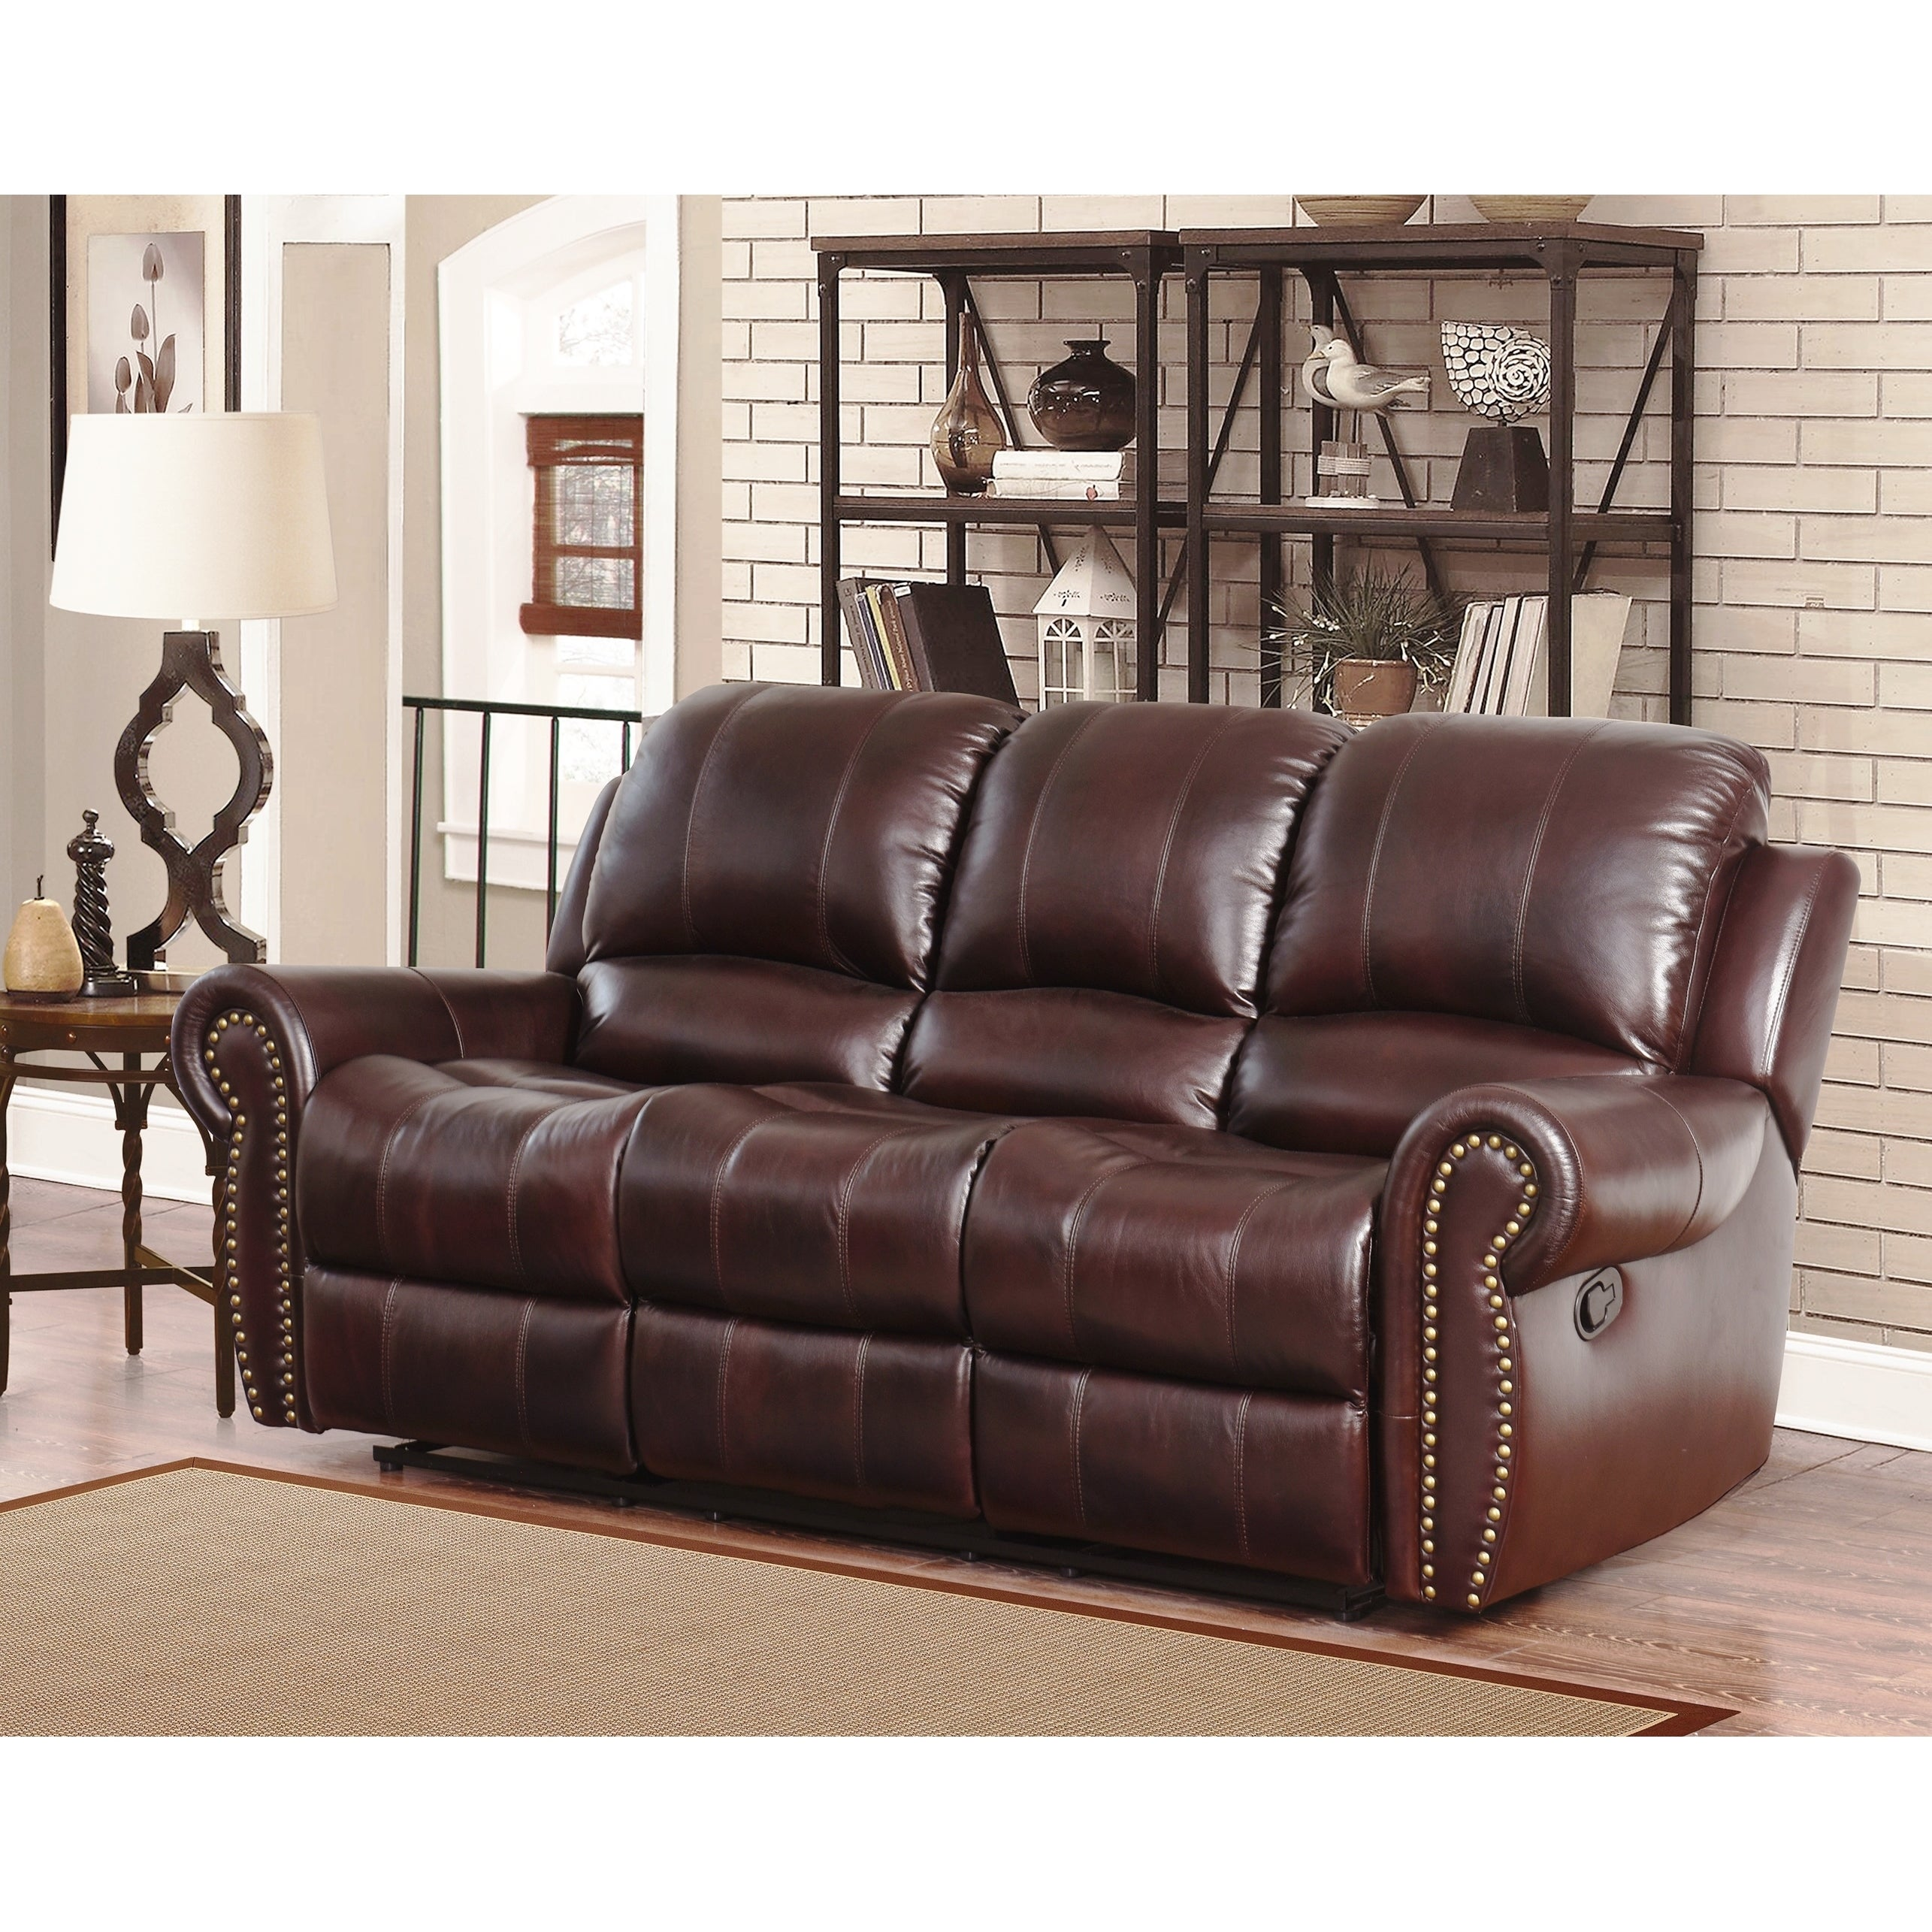 power info covers bikas recliner wide double rocking